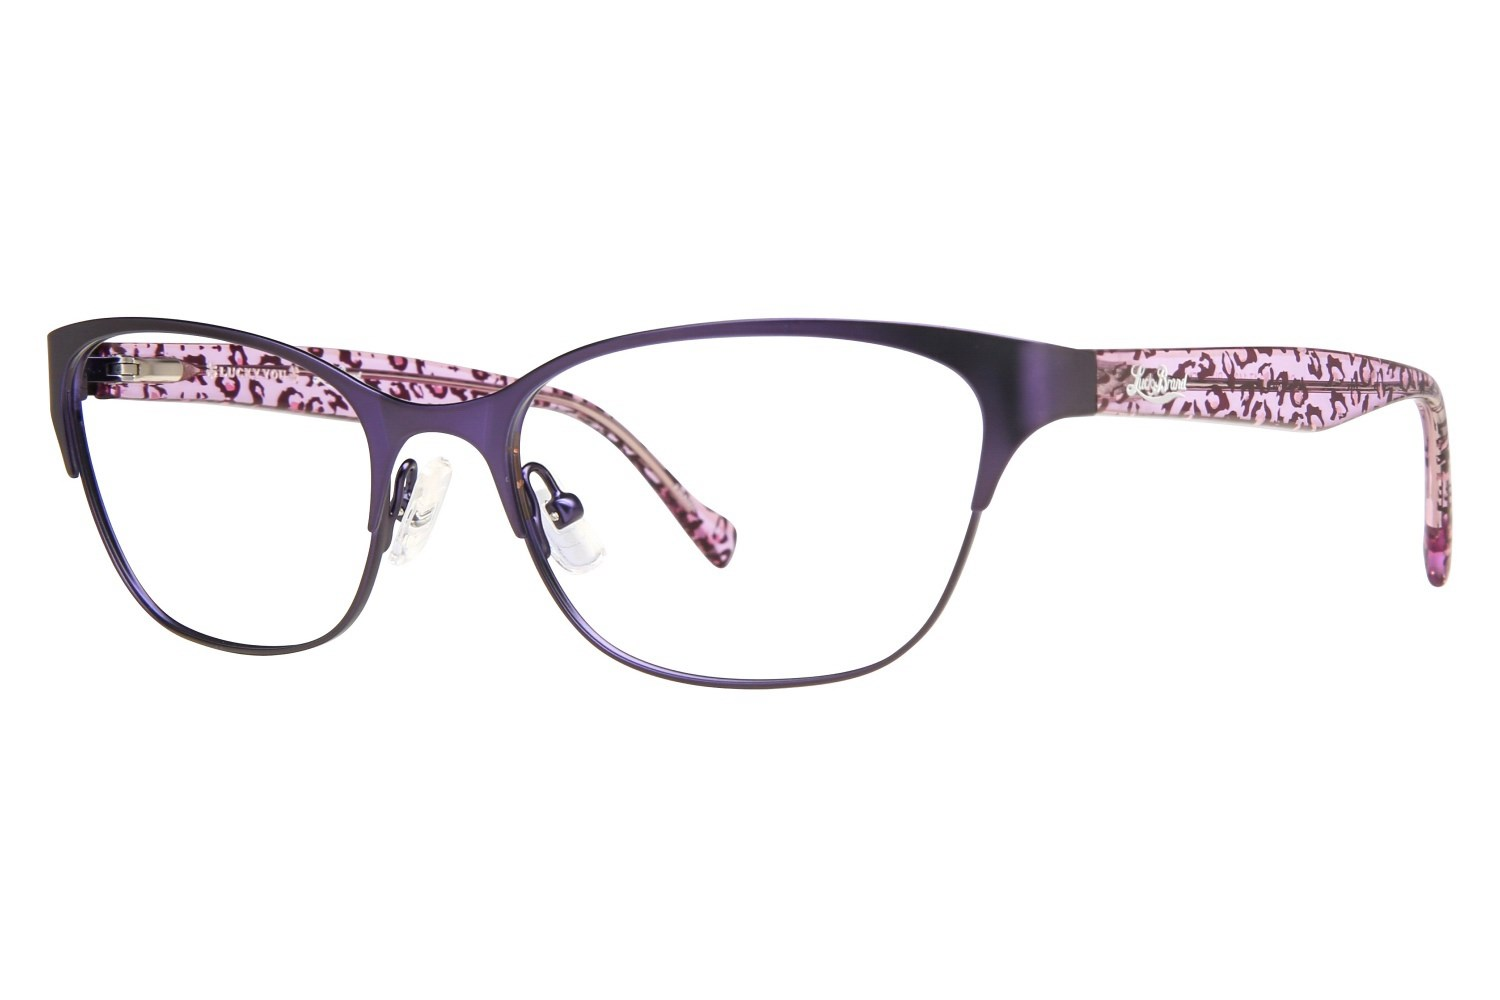 lucky-d100-prescription-eyeglasses